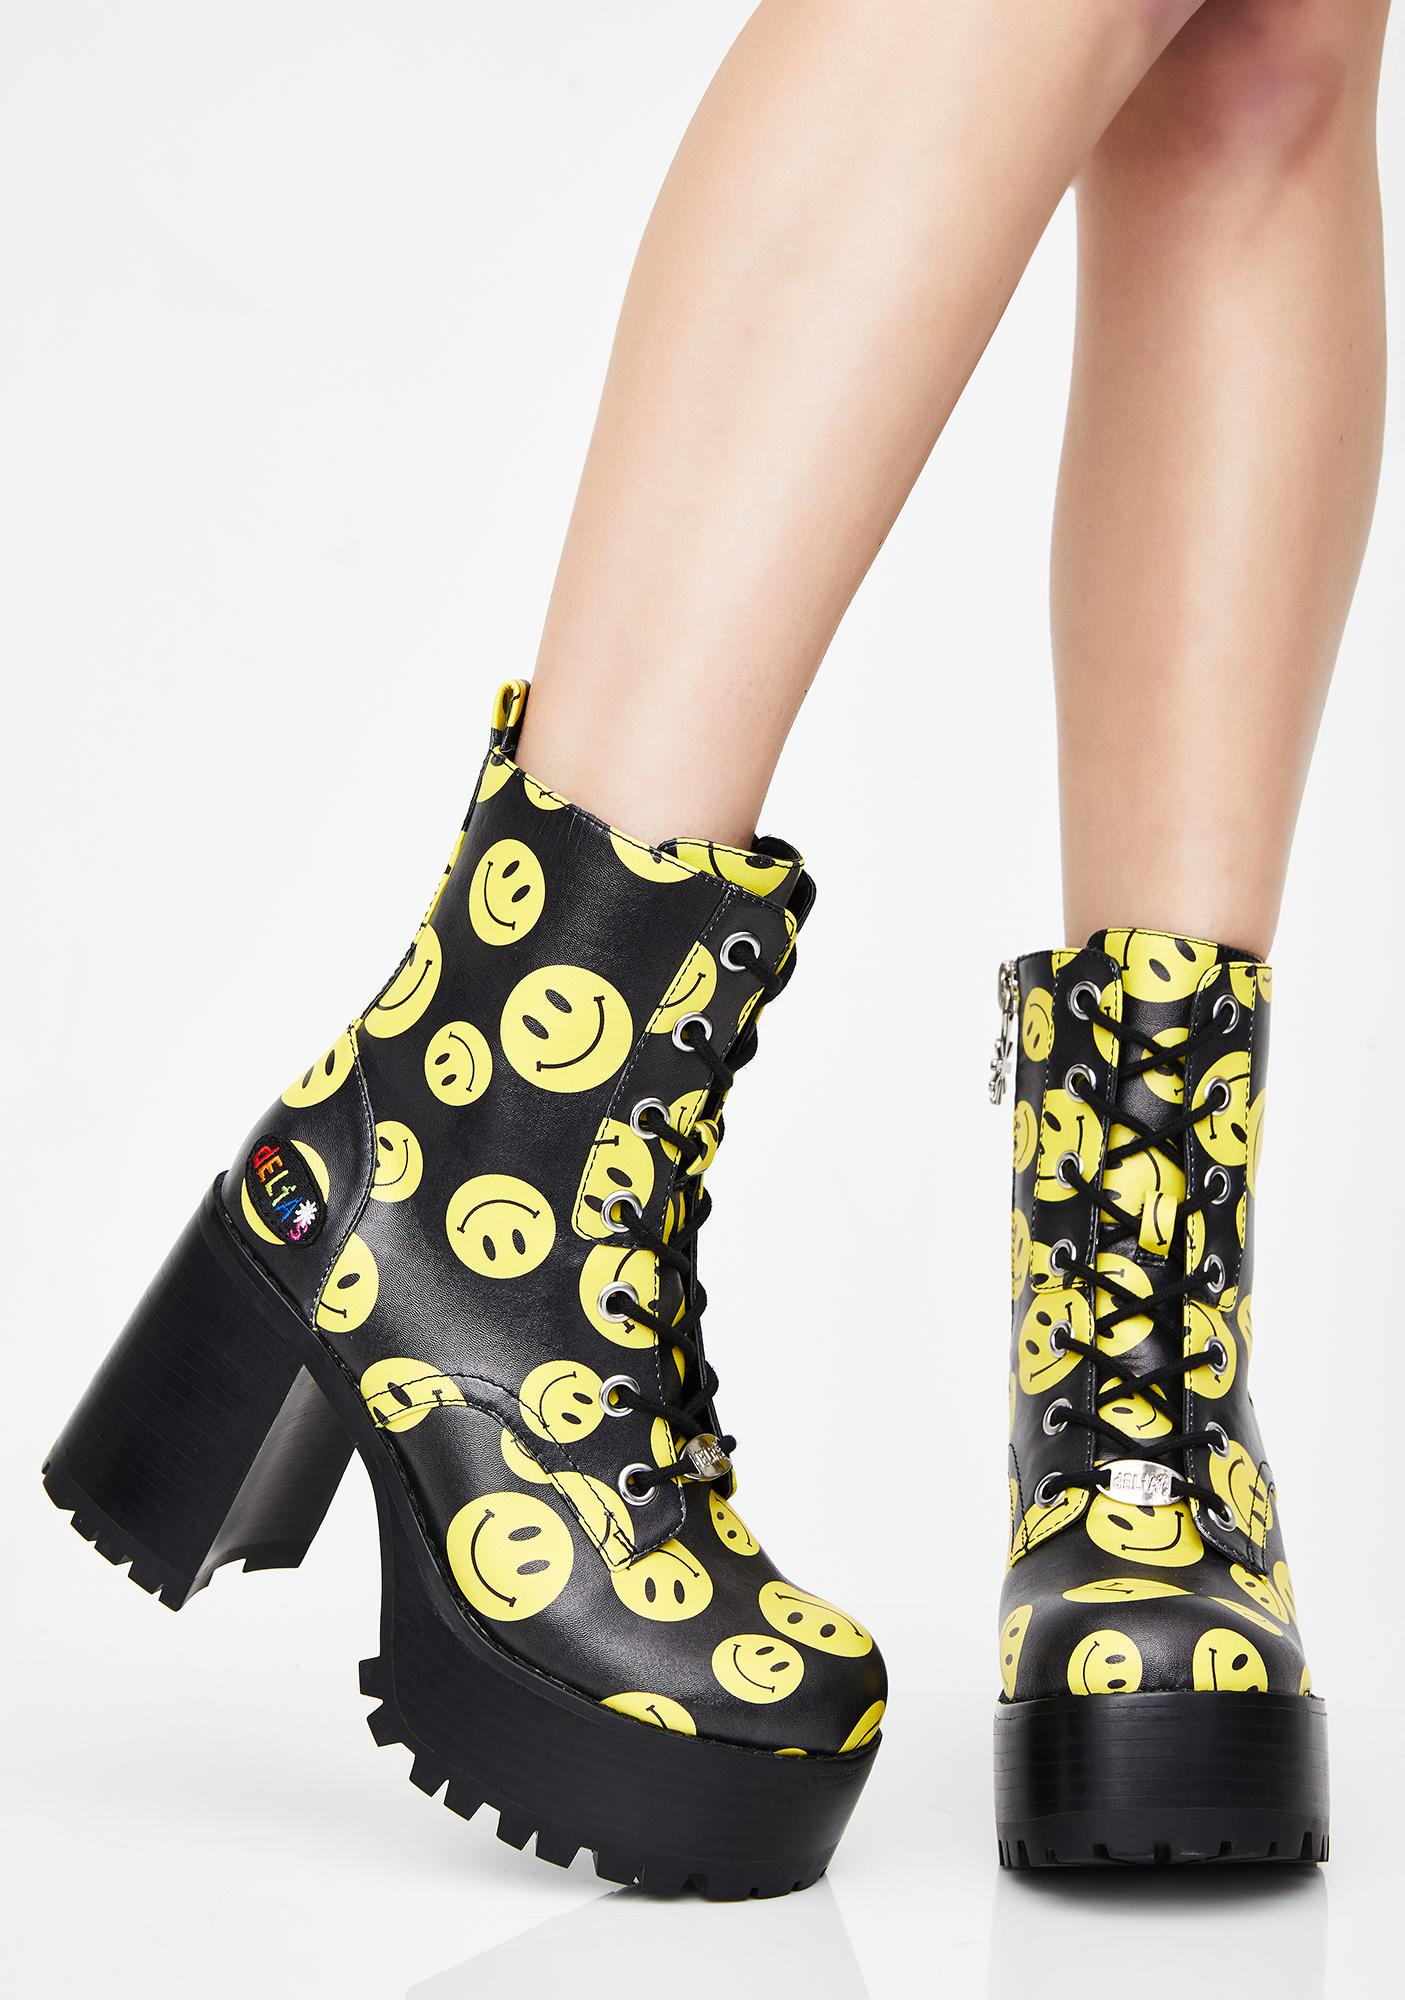 dELiA*s by Dolls Kill Joyful Noise Platform Boots